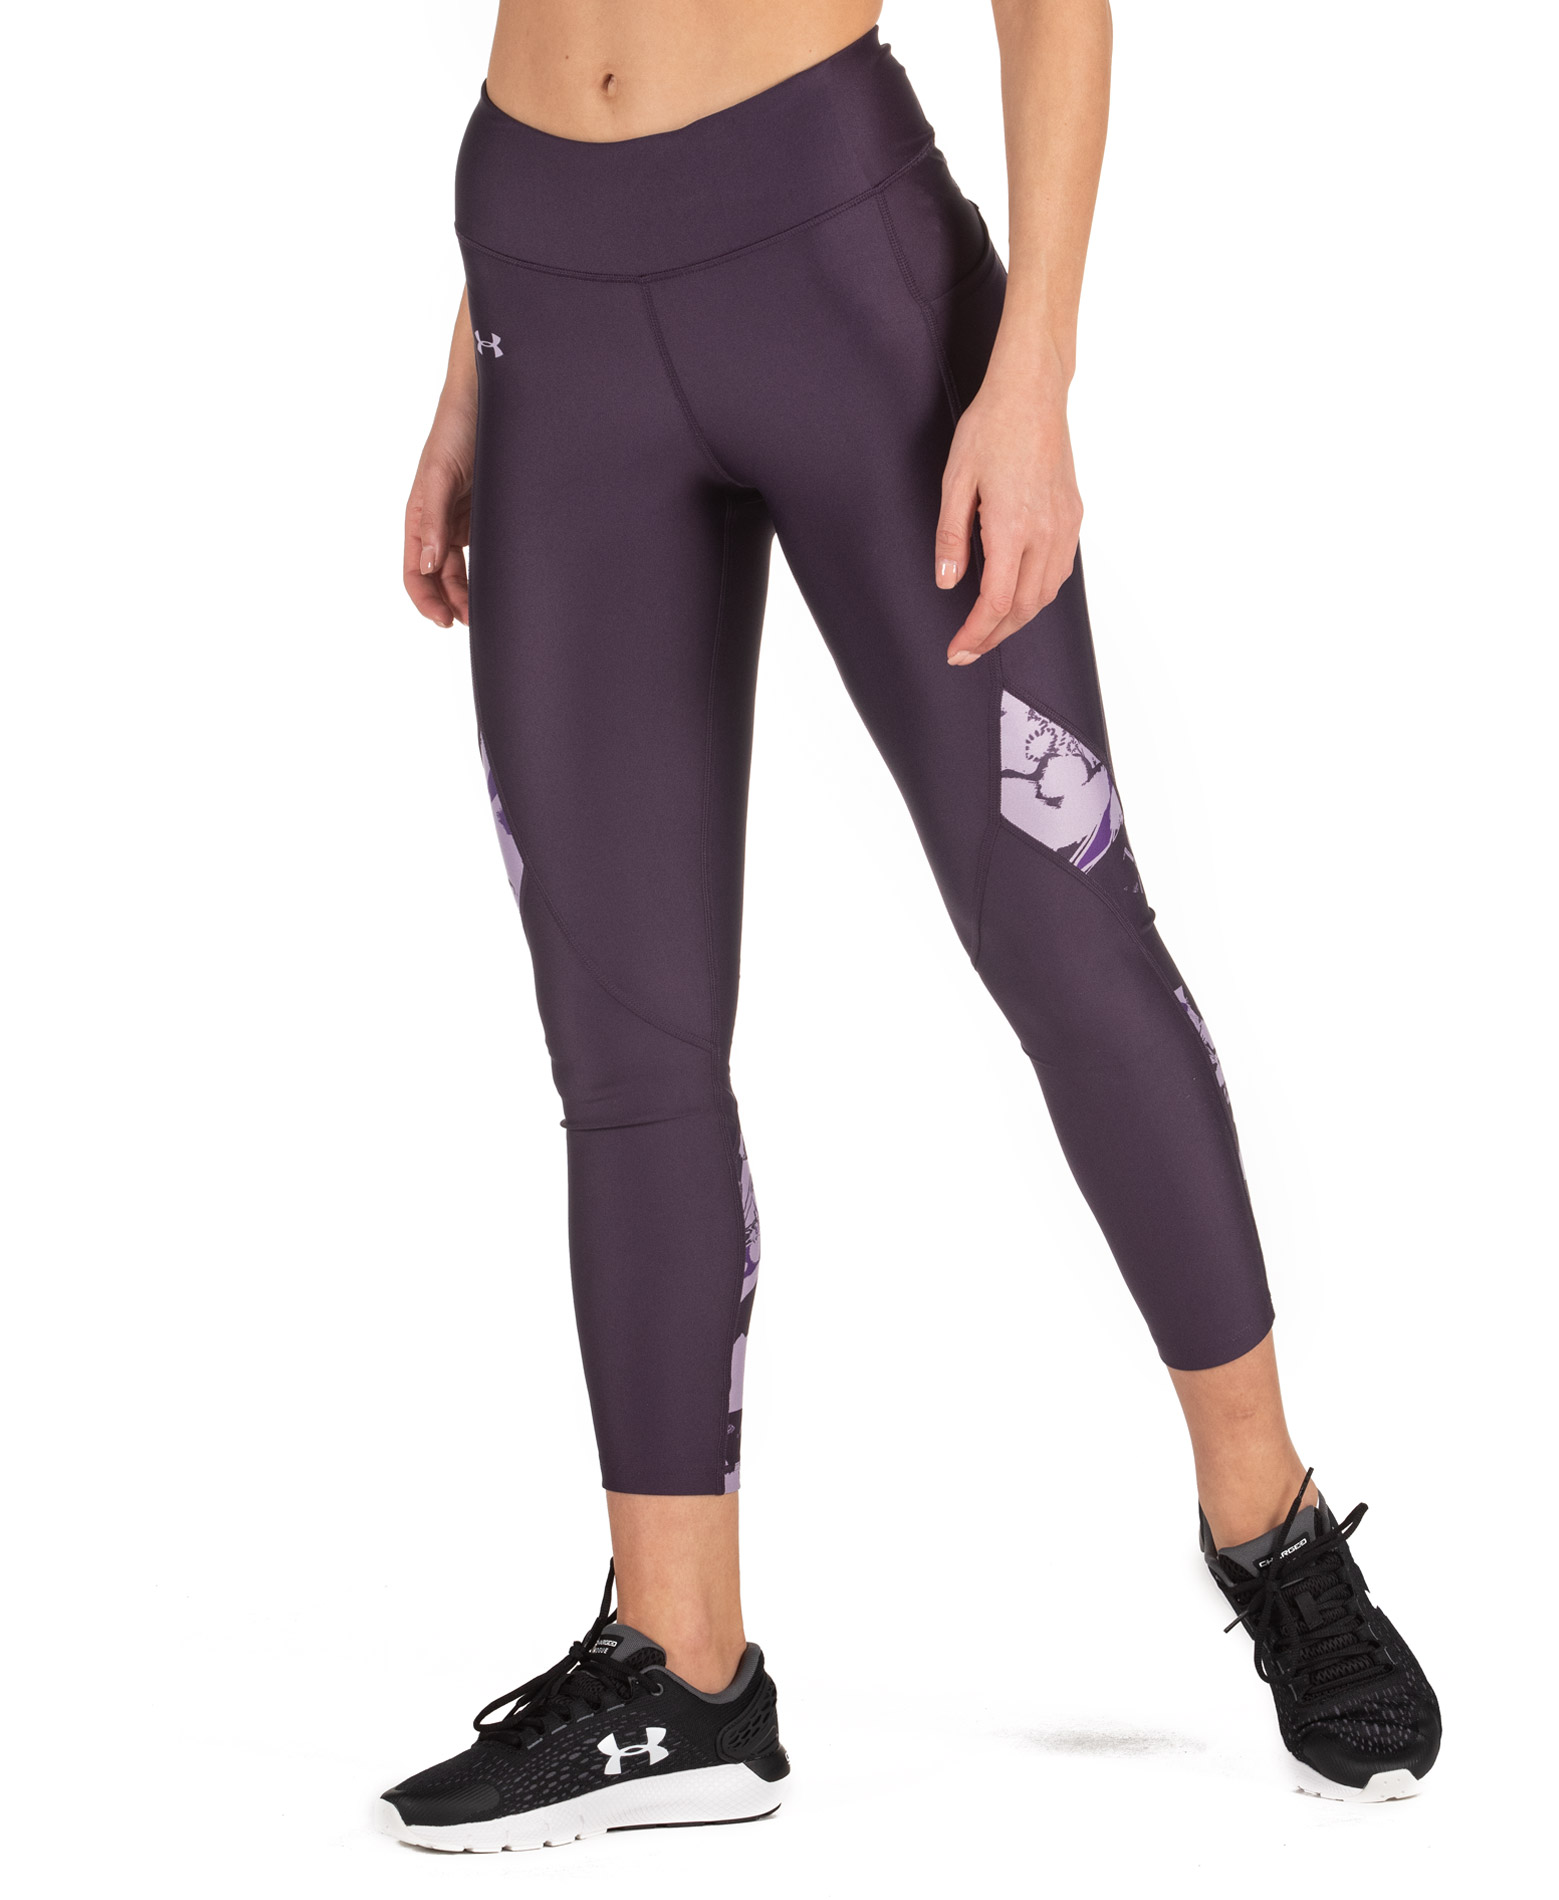 UNDER ARMOUR WHM HG ARMOUR PRINTED ANKLE CROP 1355503-541 Μωβ